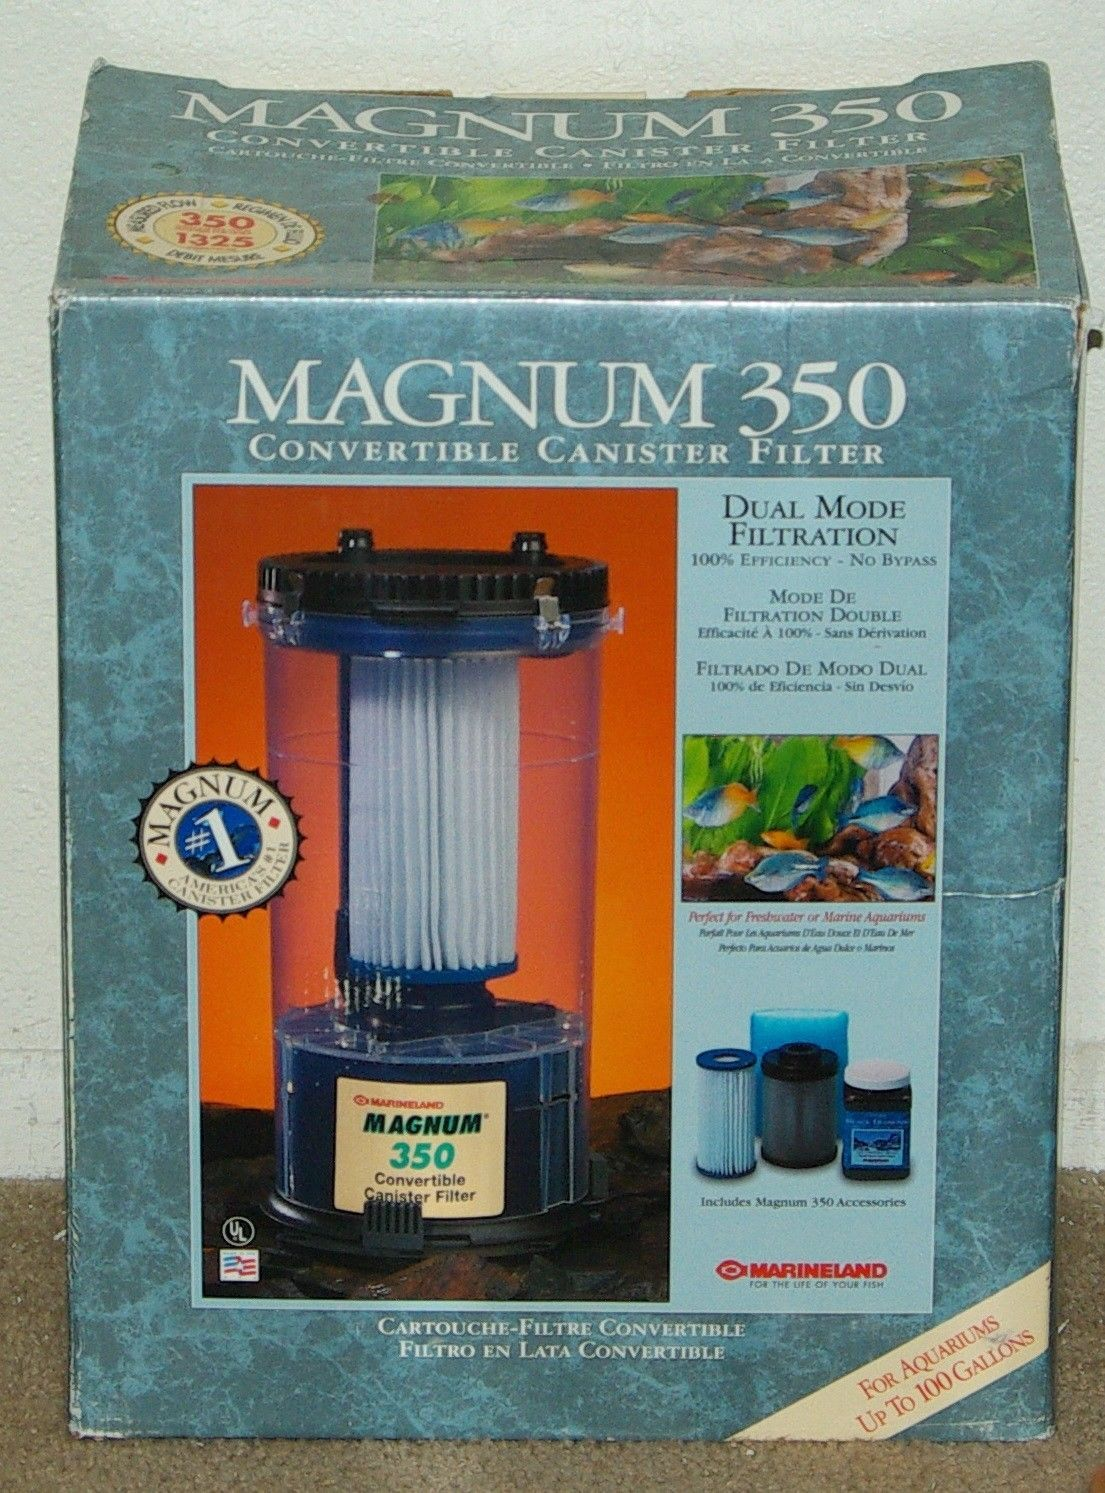 Filters 46310 Marineland Magnum 350 Canister Filter New BUY IT